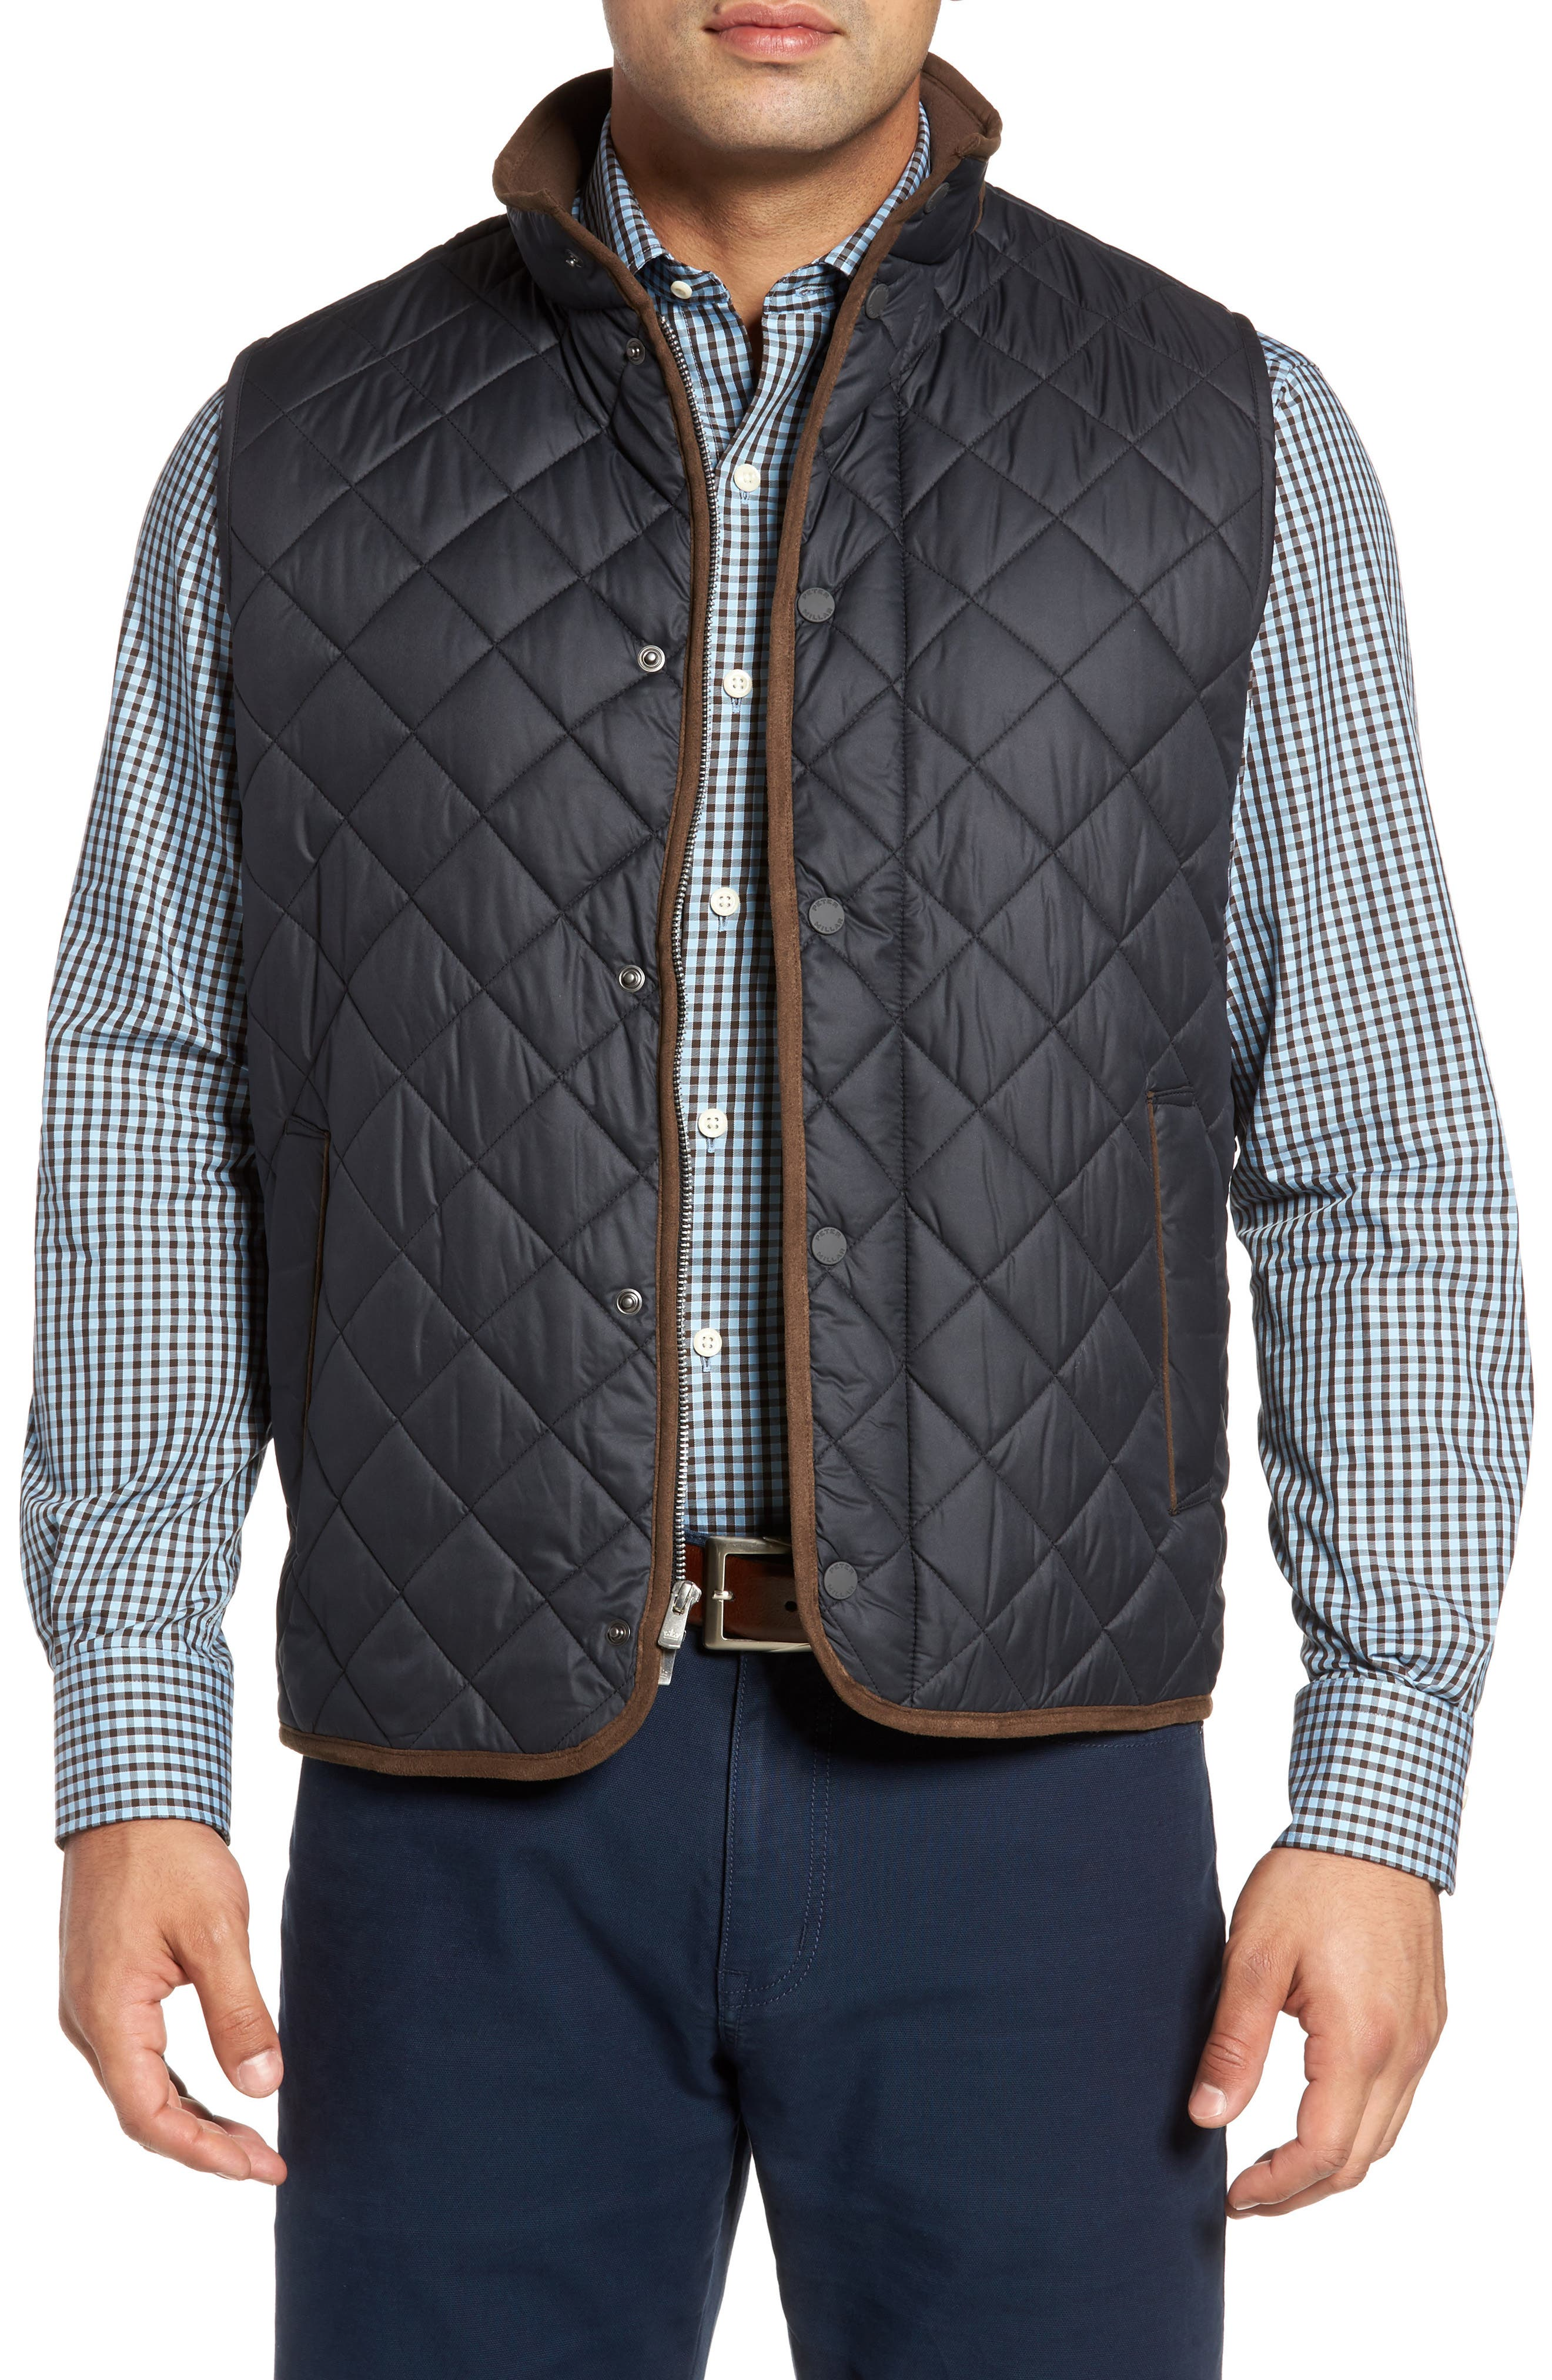 Essex Quilted Vest,                             Main thumbnail 1, color,                             001